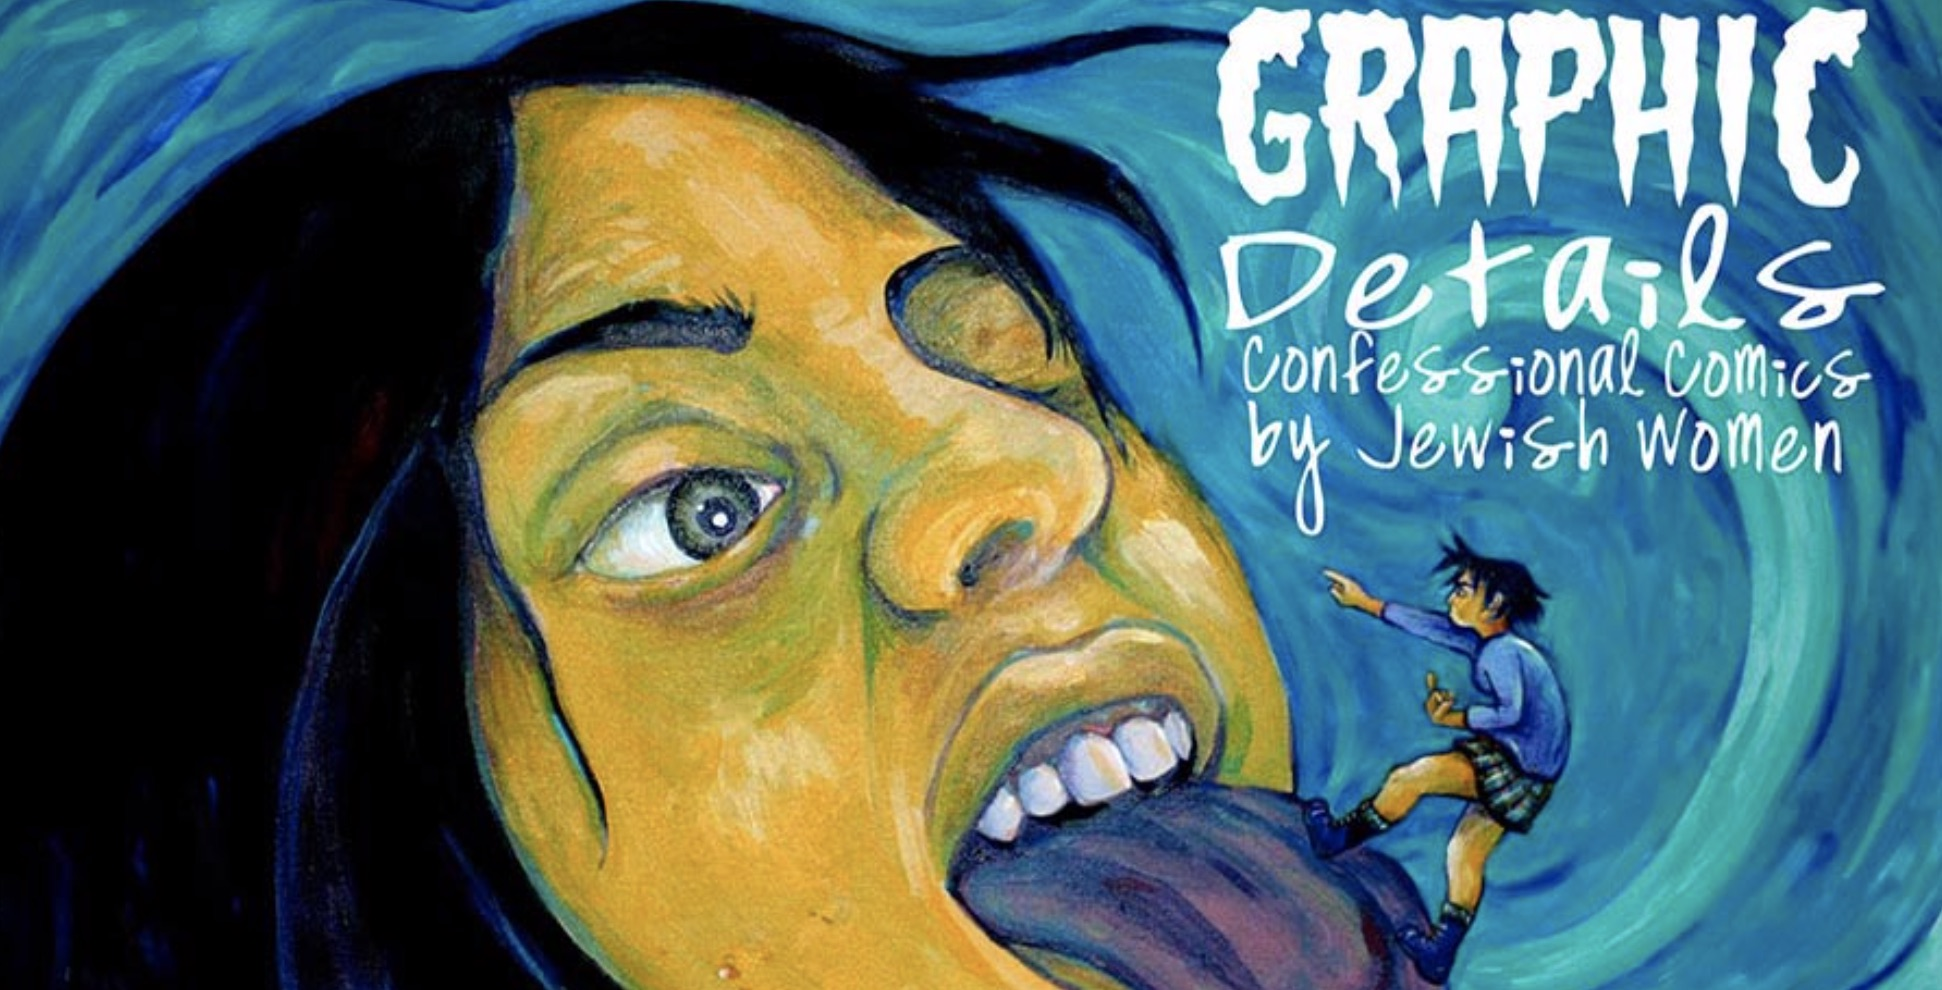 - Graphic Details: Confessional Comics by Jewish Women (2010-2016) co-curatorVanessa Davis, Bernice Eisenstein, Sarah Glidden, Miriam Katin, Aline Kominsky-Crumb, Miss Lasko-Gross, Sarah Lazarovic, Miriam Libicki, Sarah Lightman, Diane Noomin, Corinne Pearlman, Trina Robbins, Racheli Rotner, Sharon Rudahl, Laurie Sandell, Ariel Schrag, Lauren Weinstein, Ilana ZeffrenWhile the history of women in comics is well-documented, and the Jewish contribution to the art form widely acknowledged, Graphic Details: Confessional Comics by Jewish Women will be the first museum exhibit to showcase the singular voices of female Jewish artists whose revealing diaristic and confessional work has influenced the world of comics over the last four decades.Some bare their bodies. Some expose their psyches. All are fearless about sex, romance, politics, body functions, experiences, emotions, and desires.Many of the original artworks on display have never been exhibited in public until this show. Artists run the gamut from pioneering Wimmen's Comix and Twisted Sisters artists of the 1970s and 1980s to superstar younger artists: